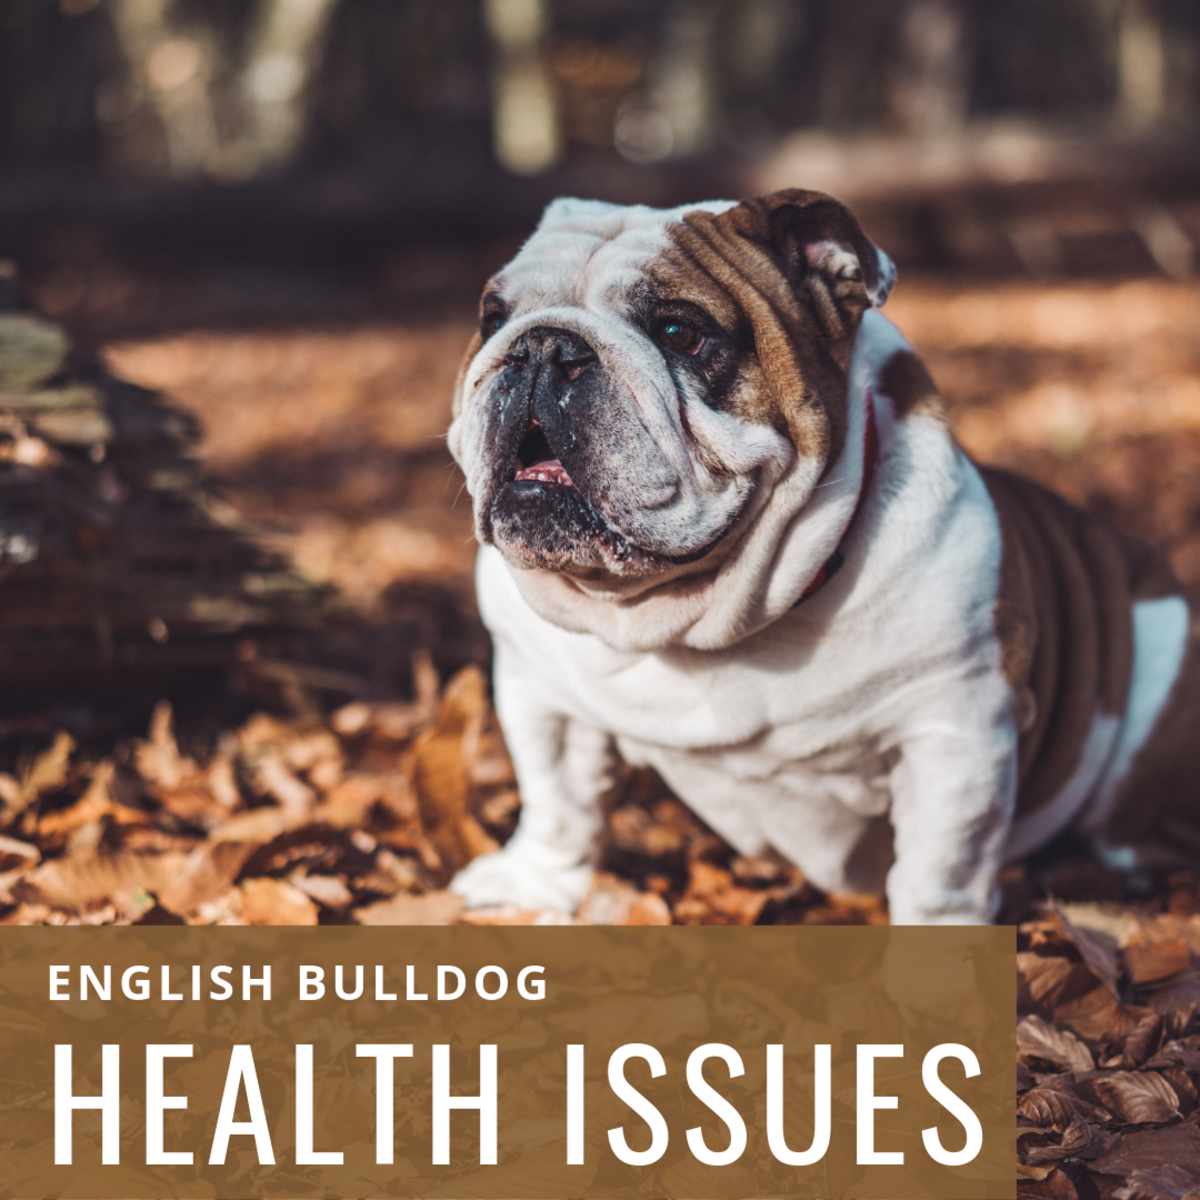 Raising Awareness About English Bulldog Health Issues